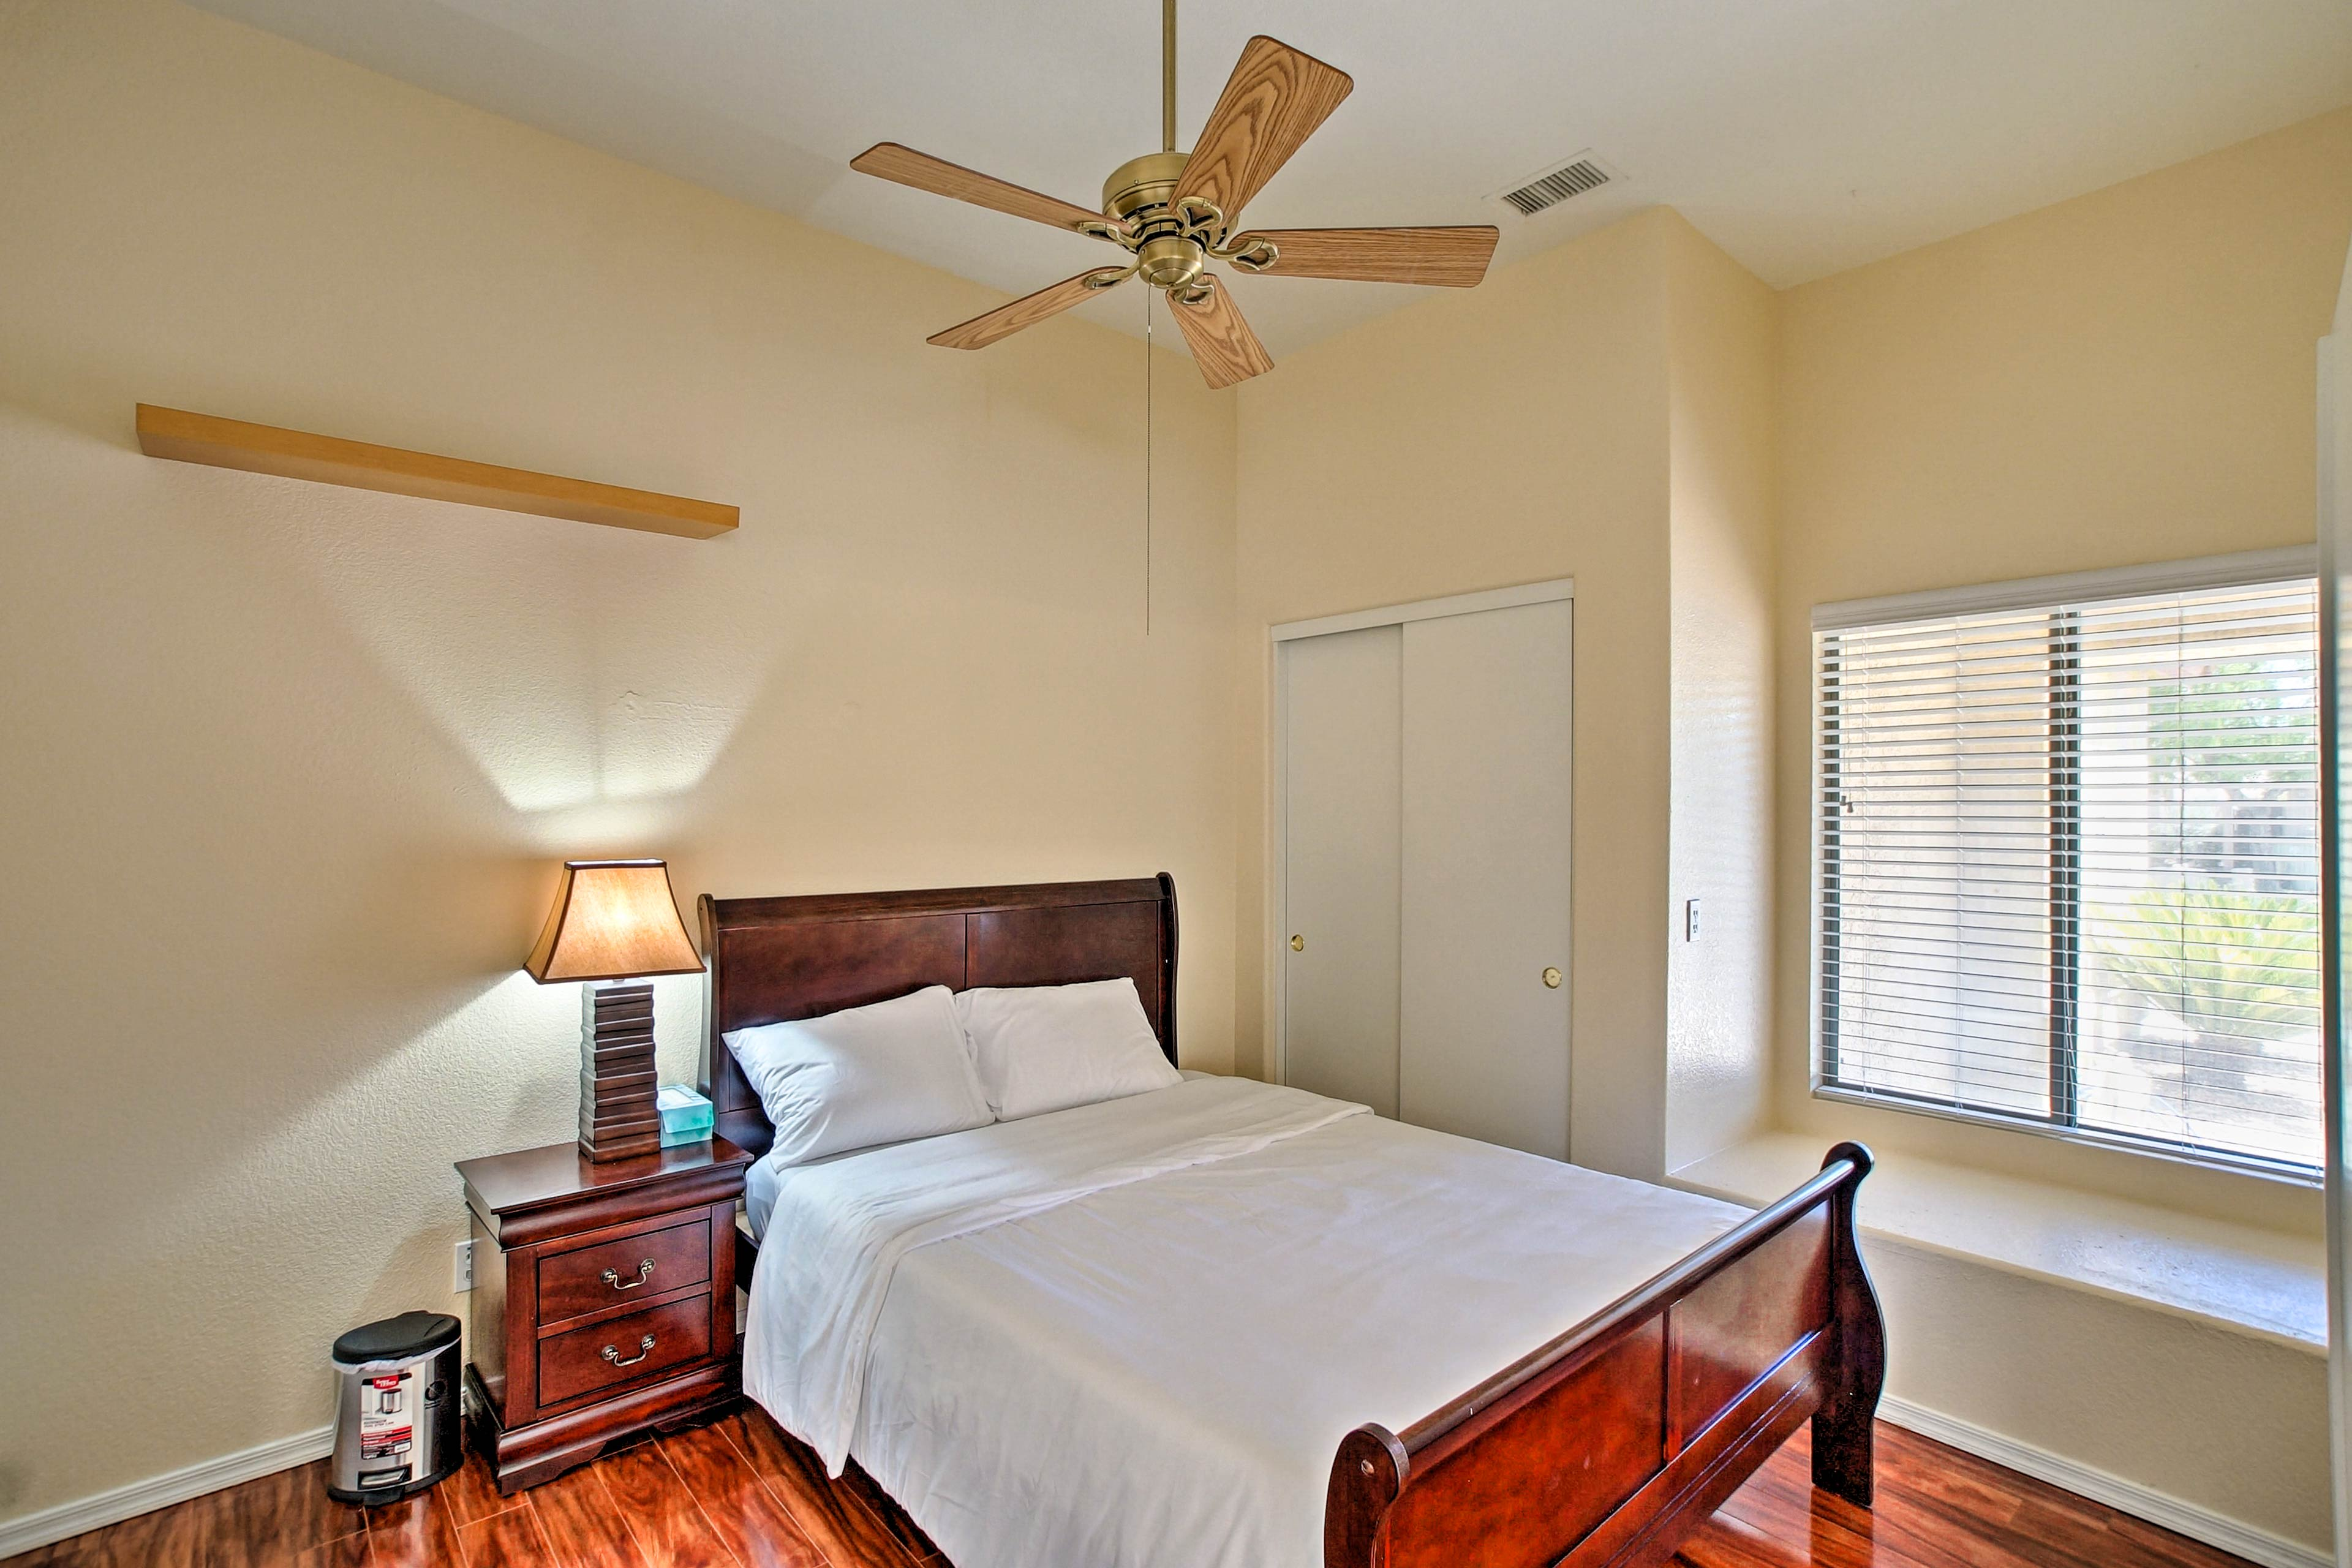 The third bedroom has a queen-sized bed for 2 as well.